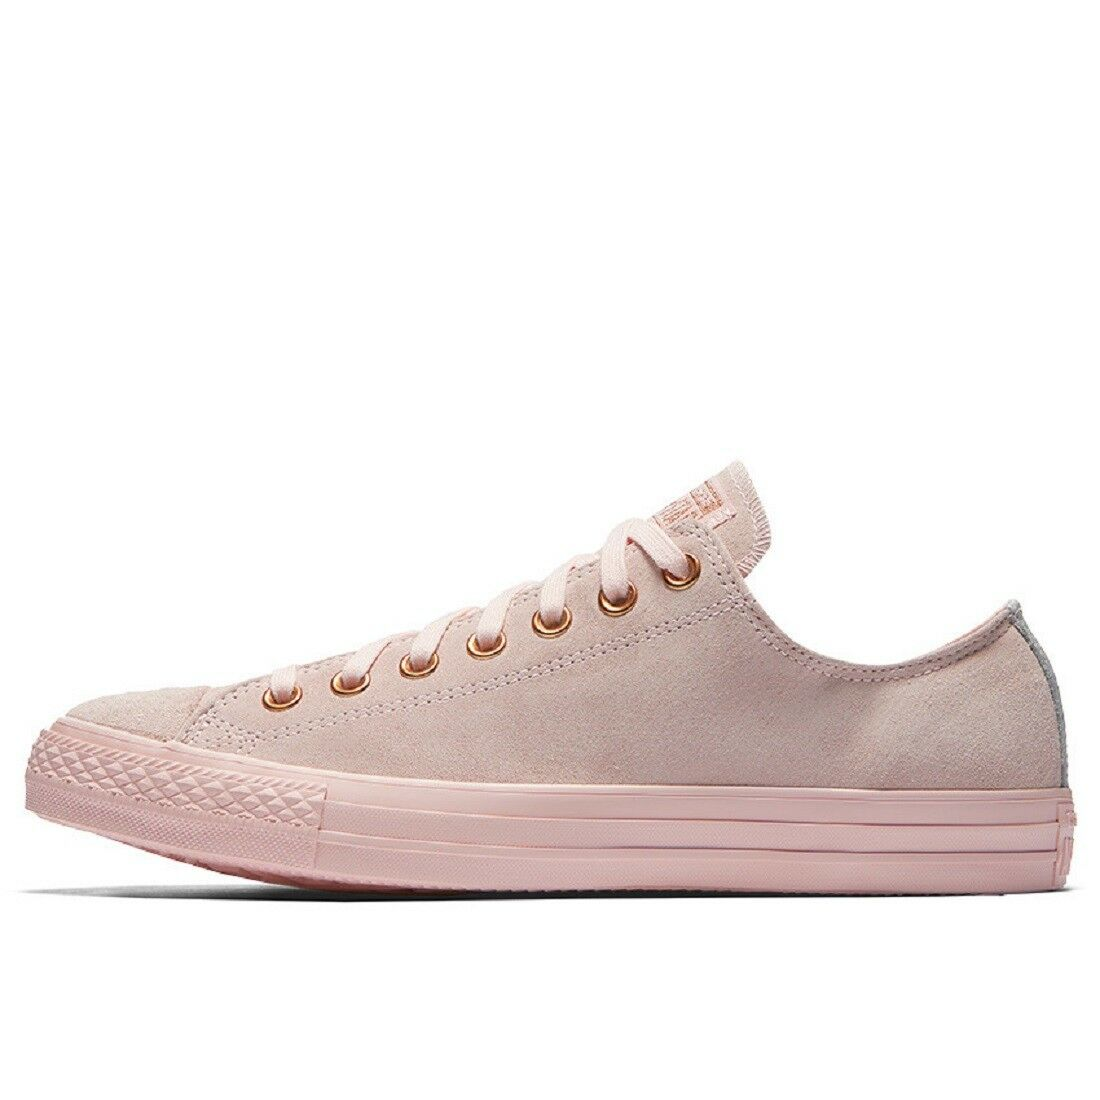 Converse All Star Ox femme suede Baskets Mode rose